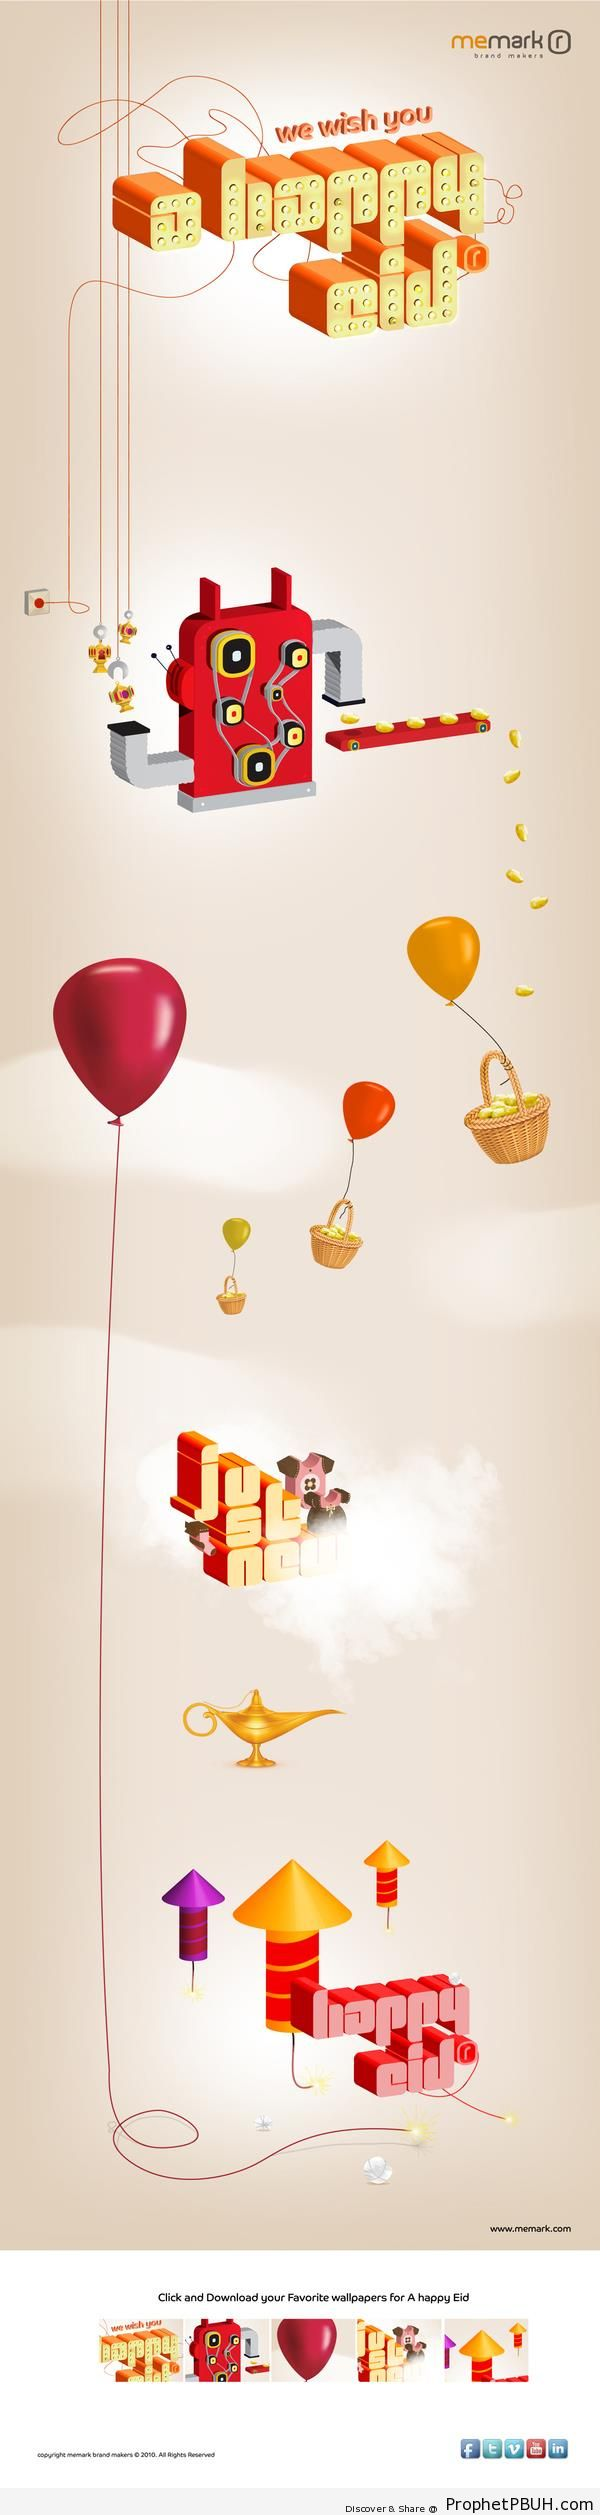 Happy Eid Greeting with Oil Lamp, Balloons, and Fireworks - Drawings of Balloons